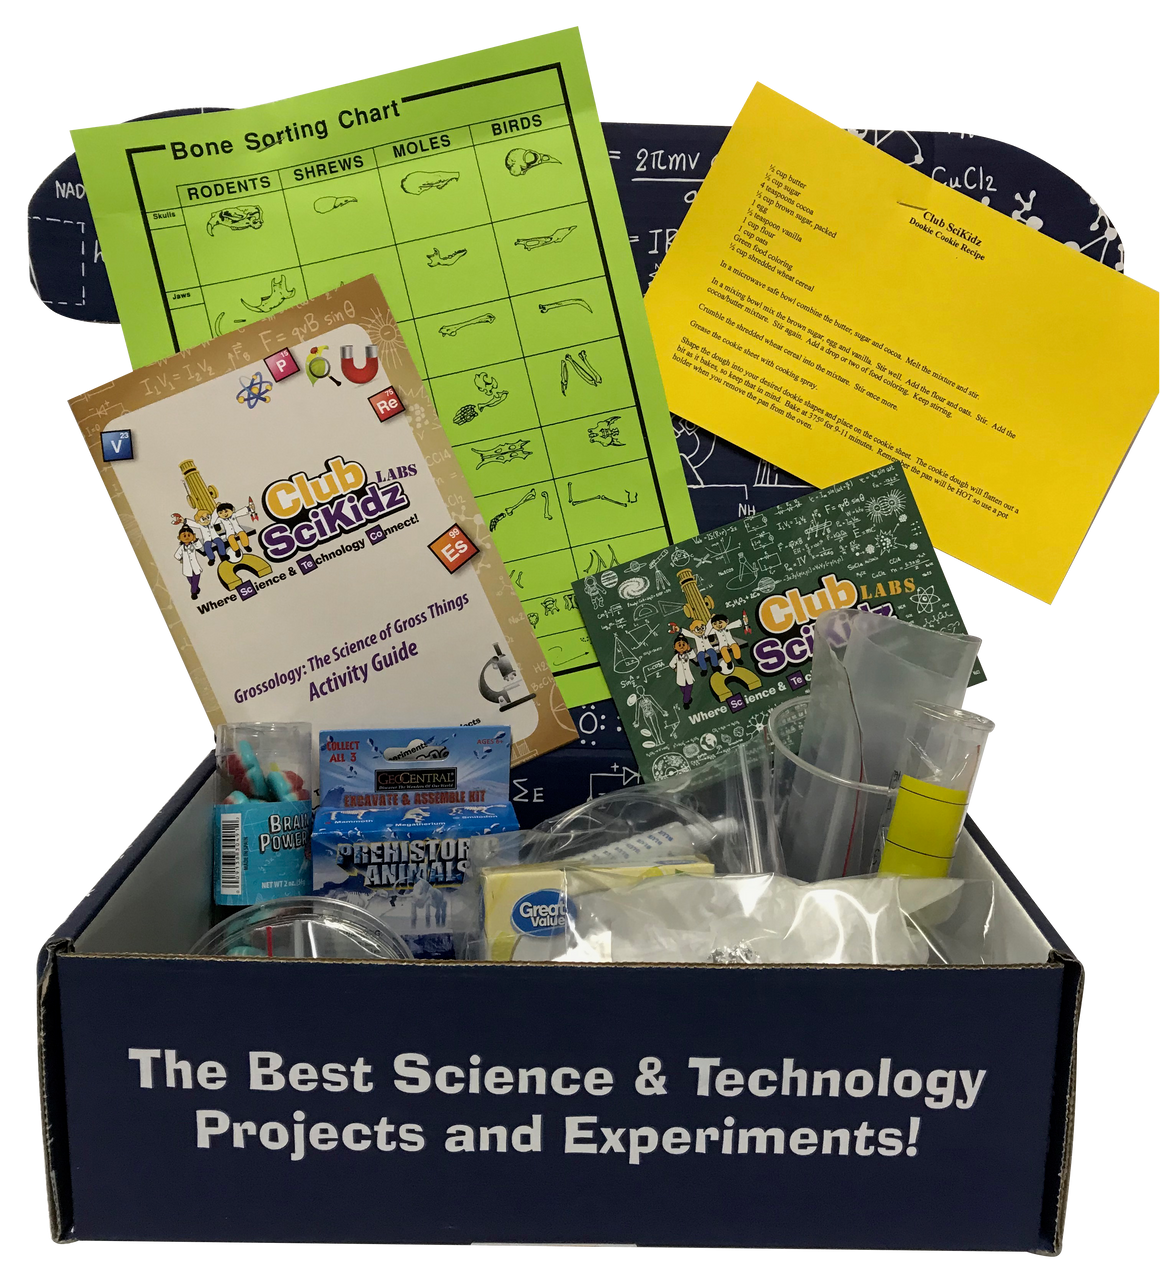 Club SciKidz STEM Box Grossology: The Science of Gross Things